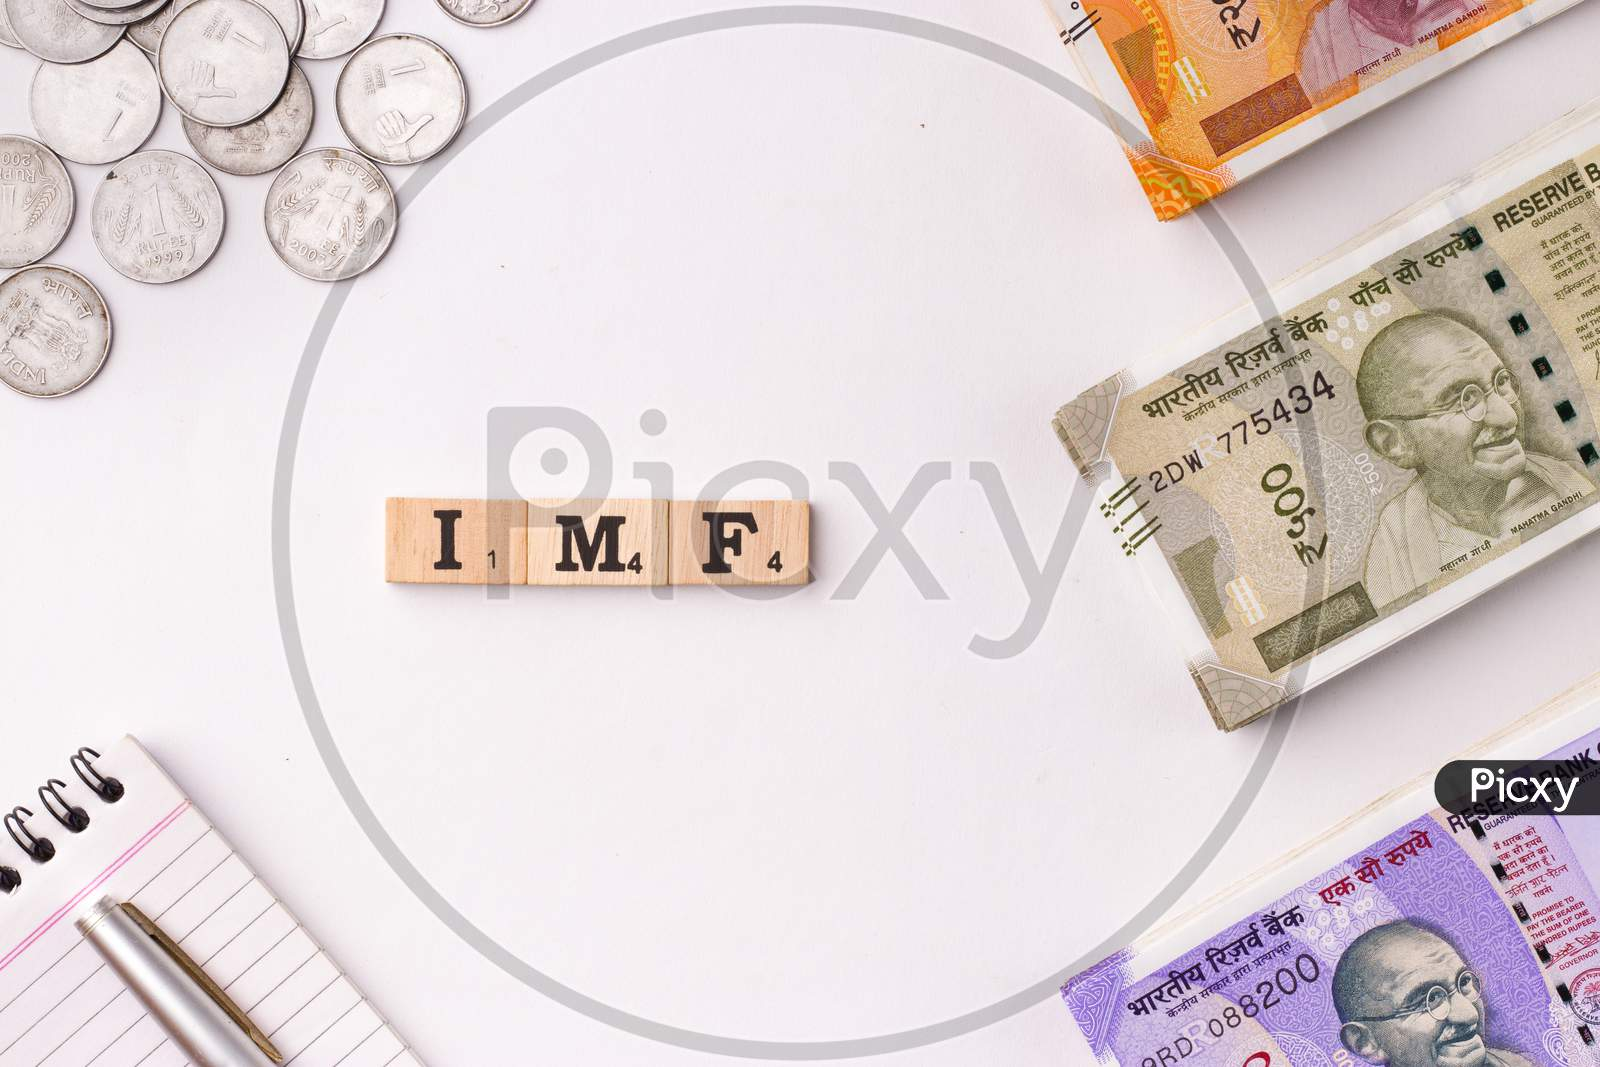 Assam, india - March 30, 2021 : Word INCOME TAX written on wooden cubes stock image.